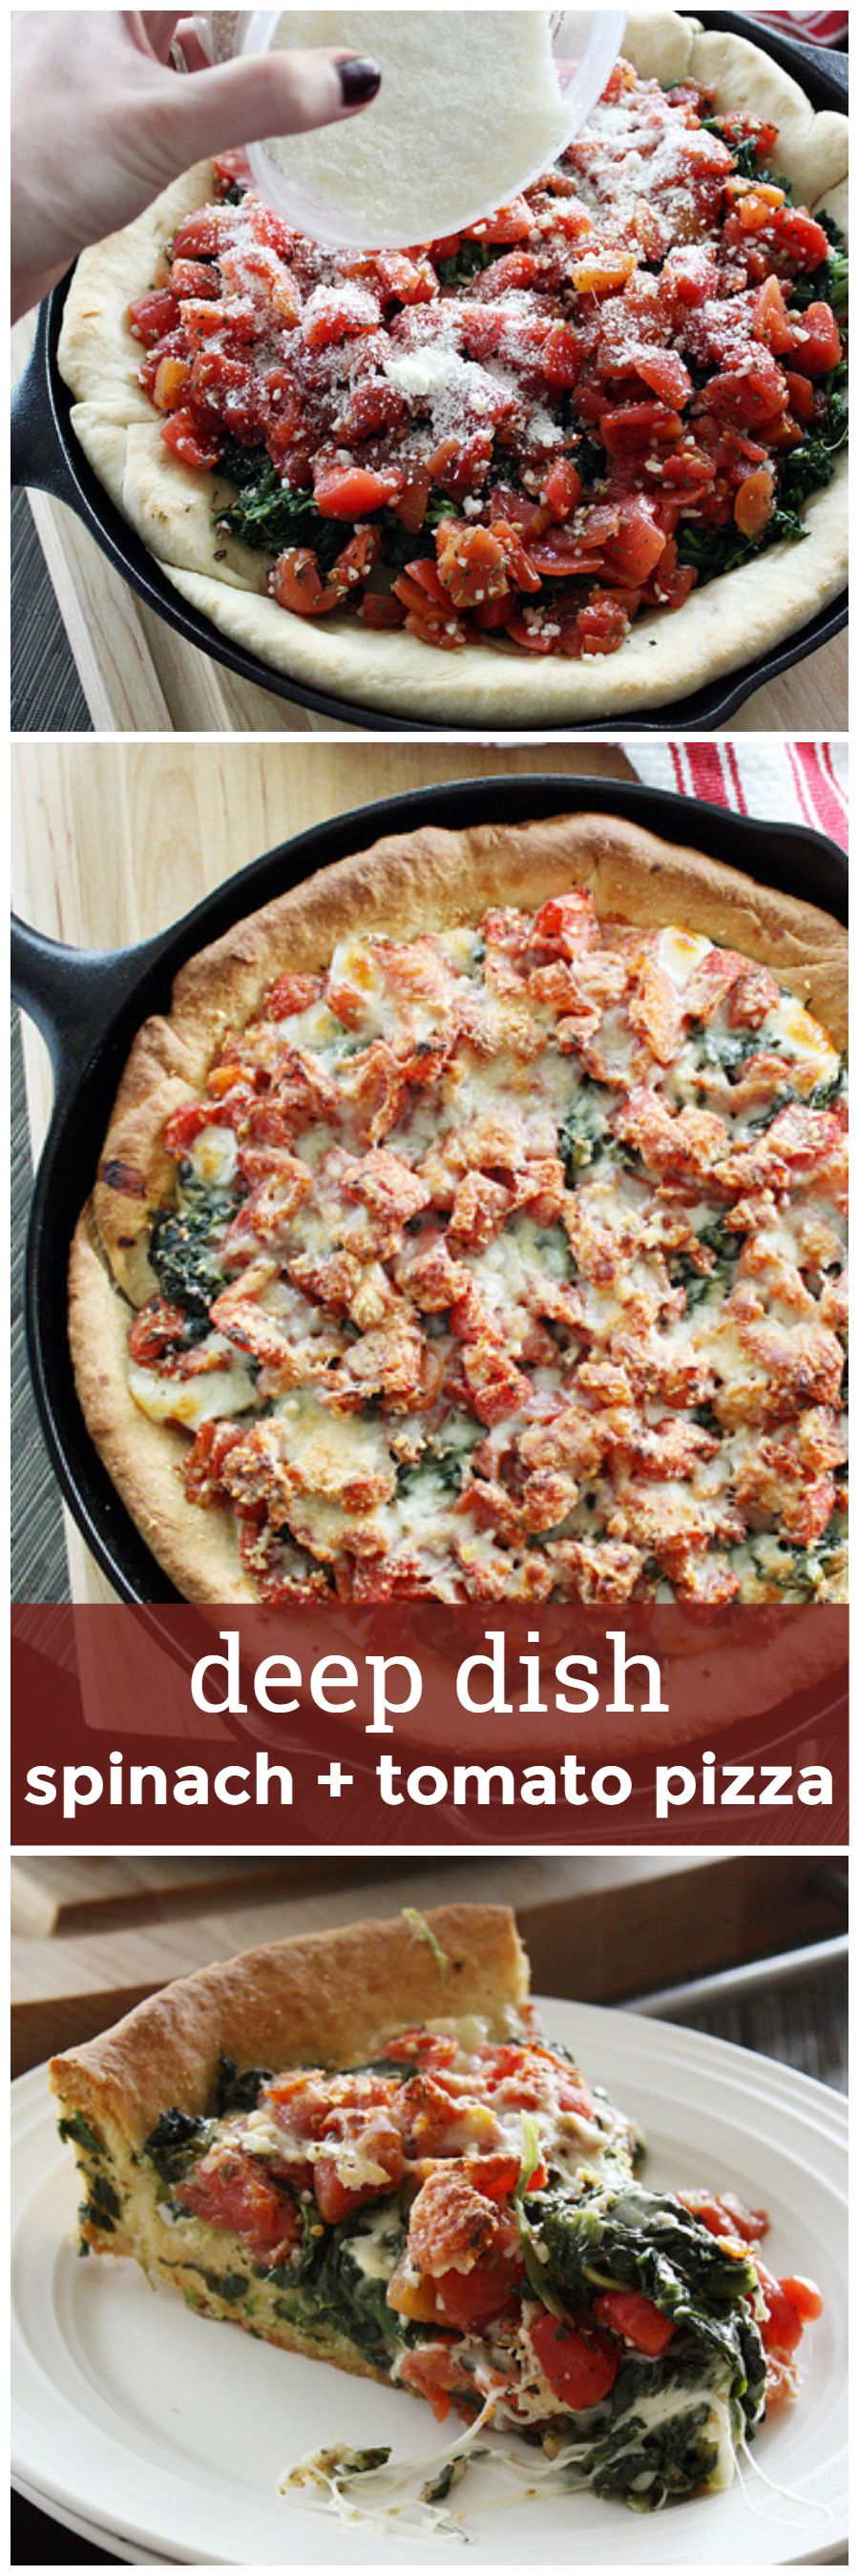 Deep Dish Spinach and Tomato Pizza -- a flaky, deep dish-style crust filled with tomatoes, spinach and a whole lot of cheese. girlversusdough.com @girlversusdough